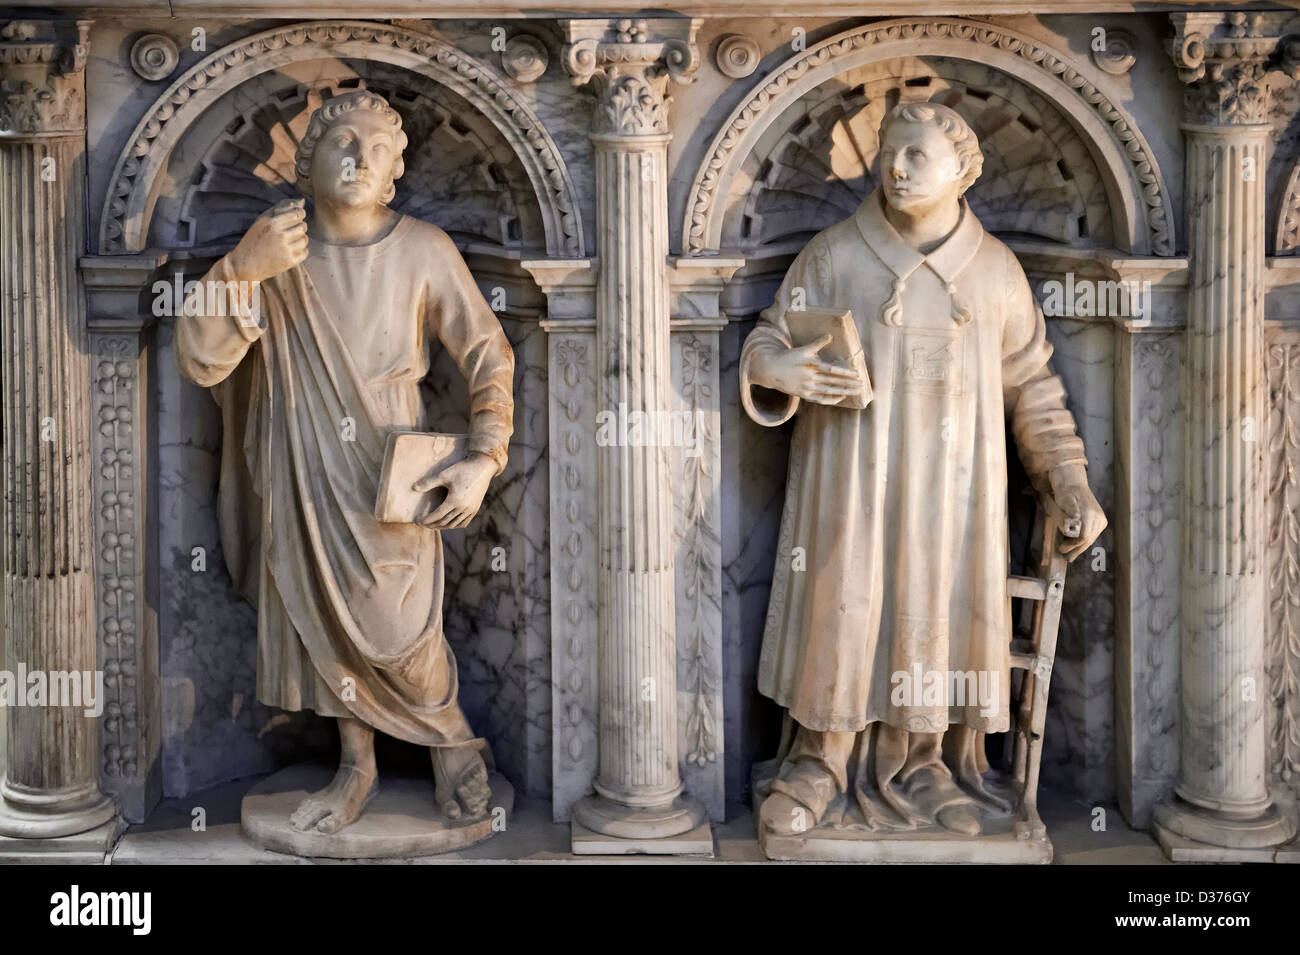 Sculptured Side panels of the Renaissance style Tomb of Valentine Visconti Cathedral Basilica of Saint Denis , Paris - Stock Image